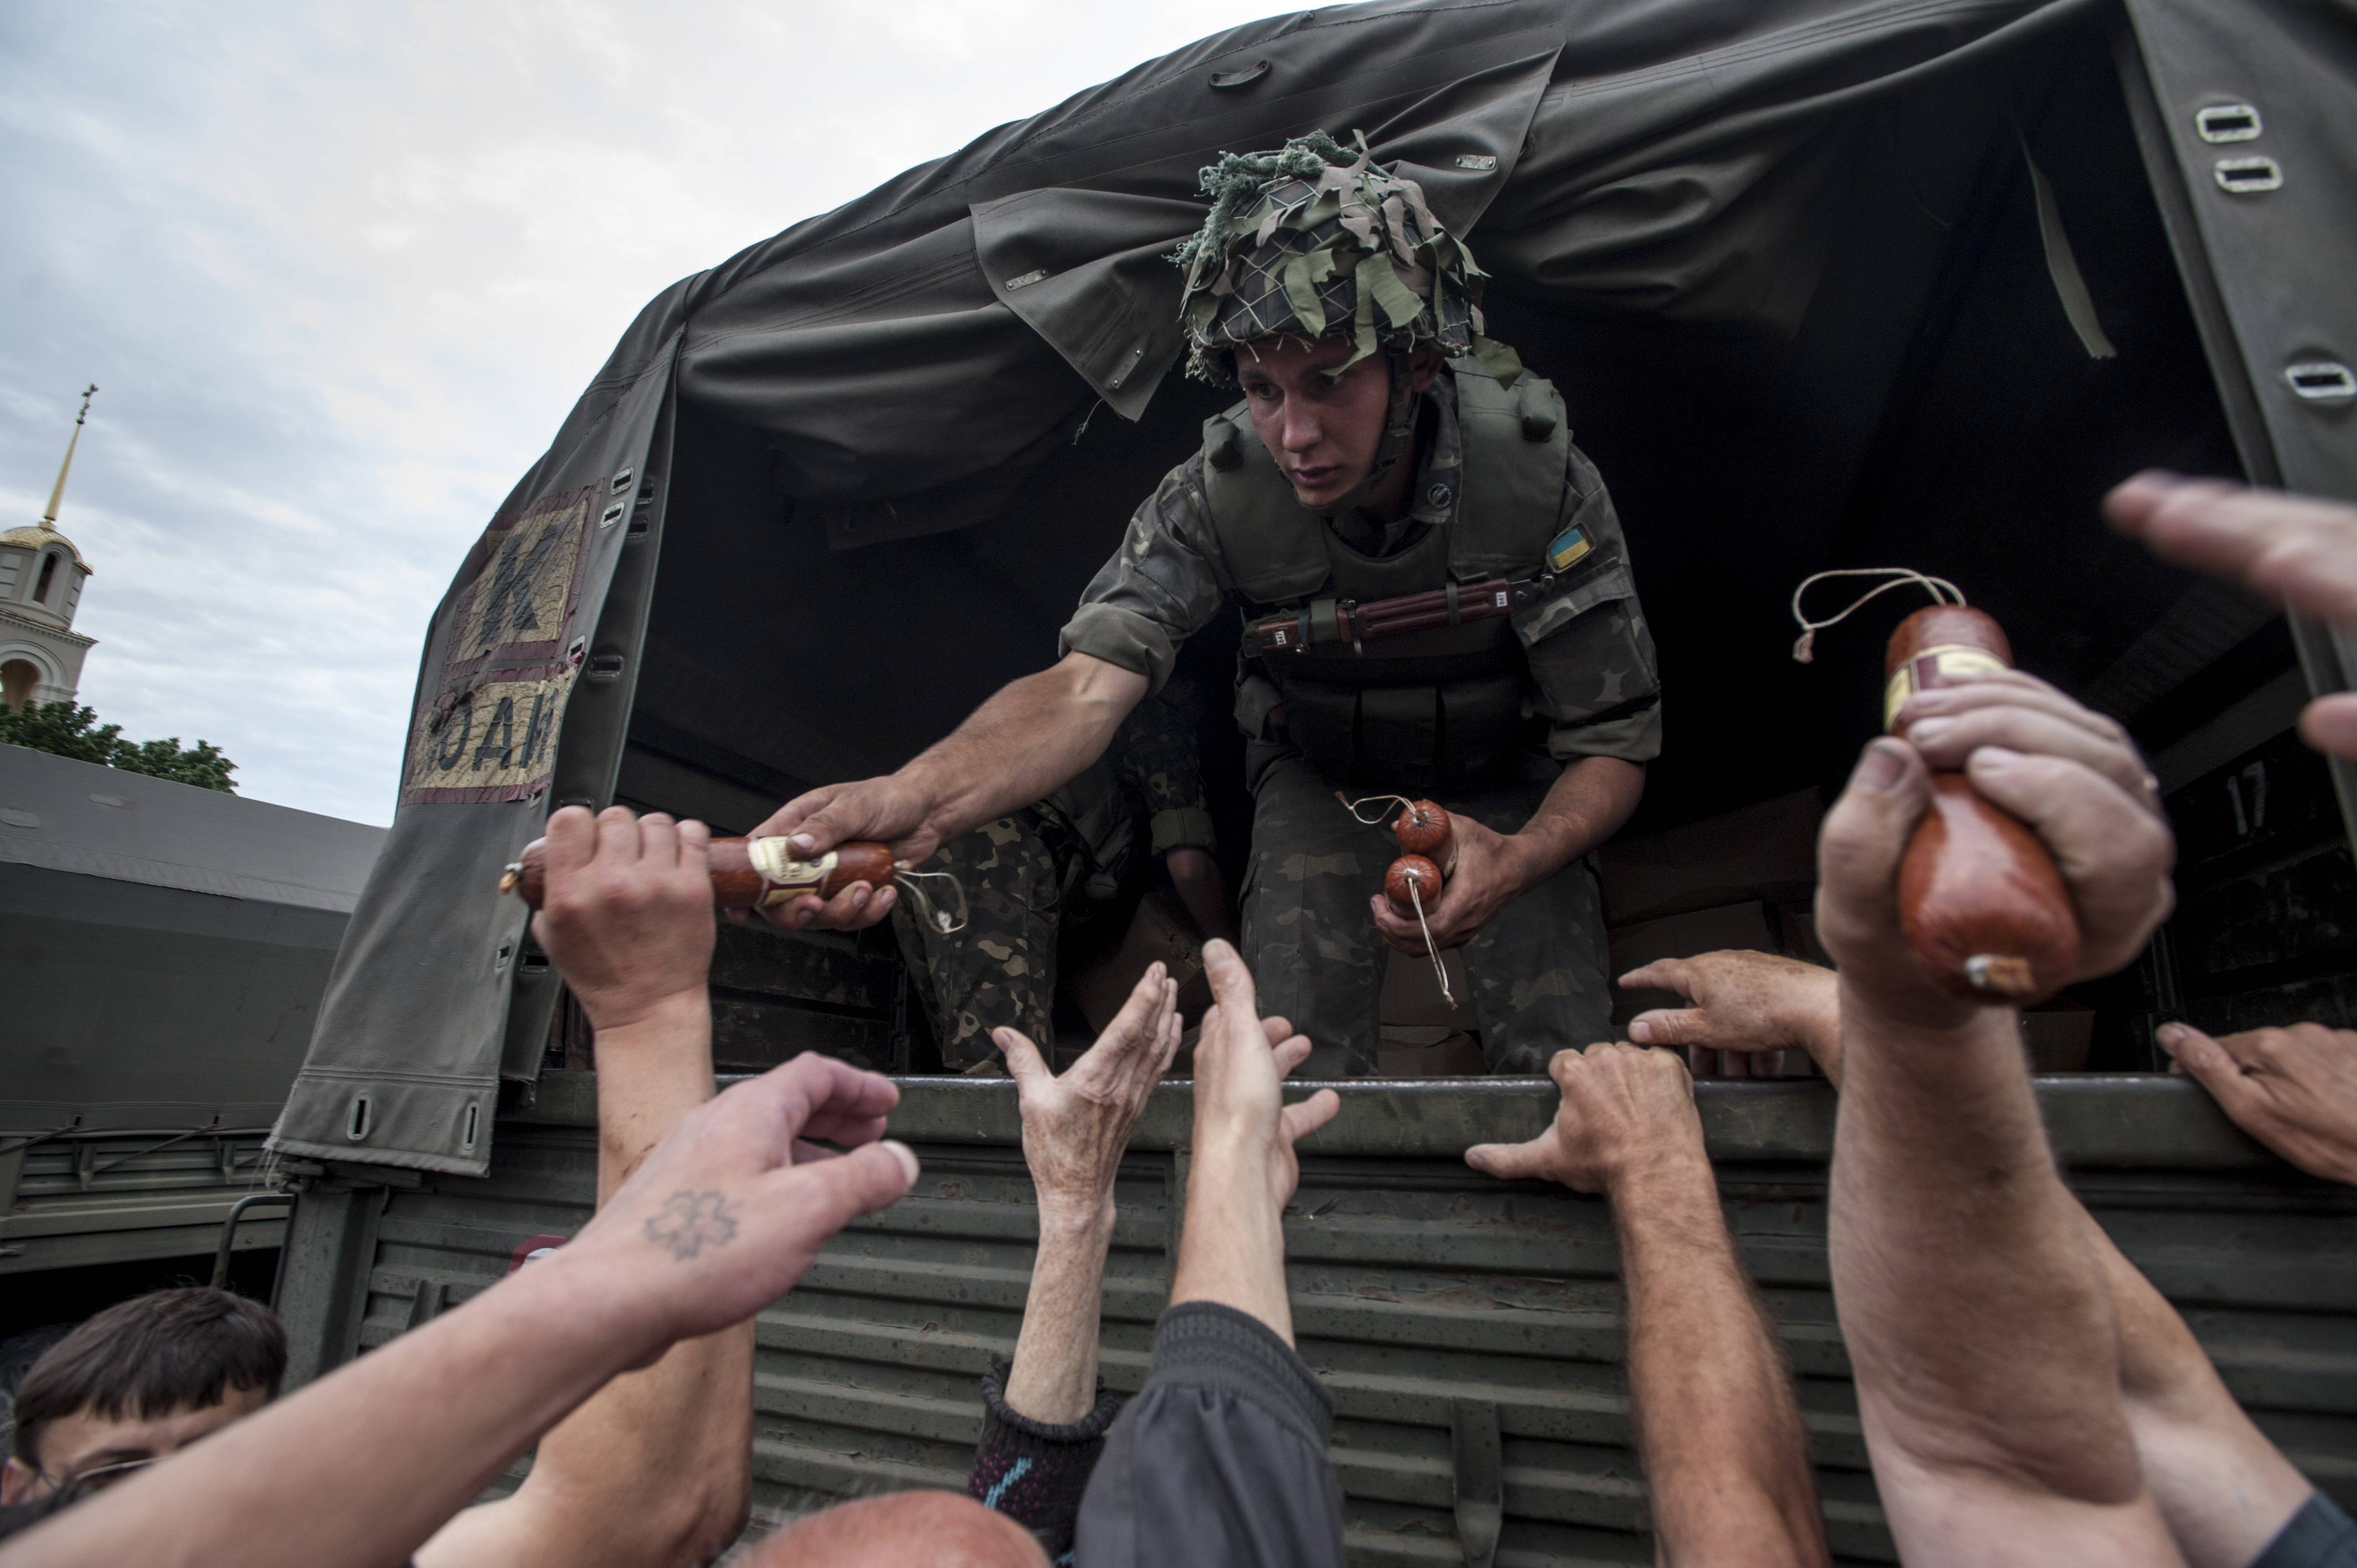 A Ukrainian soldier gives out sausages in Slovyansk, eastern Ukraine, Sunday, a day after Ukrainian troops forced the rebels out of the city that had been the center of the fighting. The success there suggests that the government may finally be making gains in the months-long battle against the insurgency.